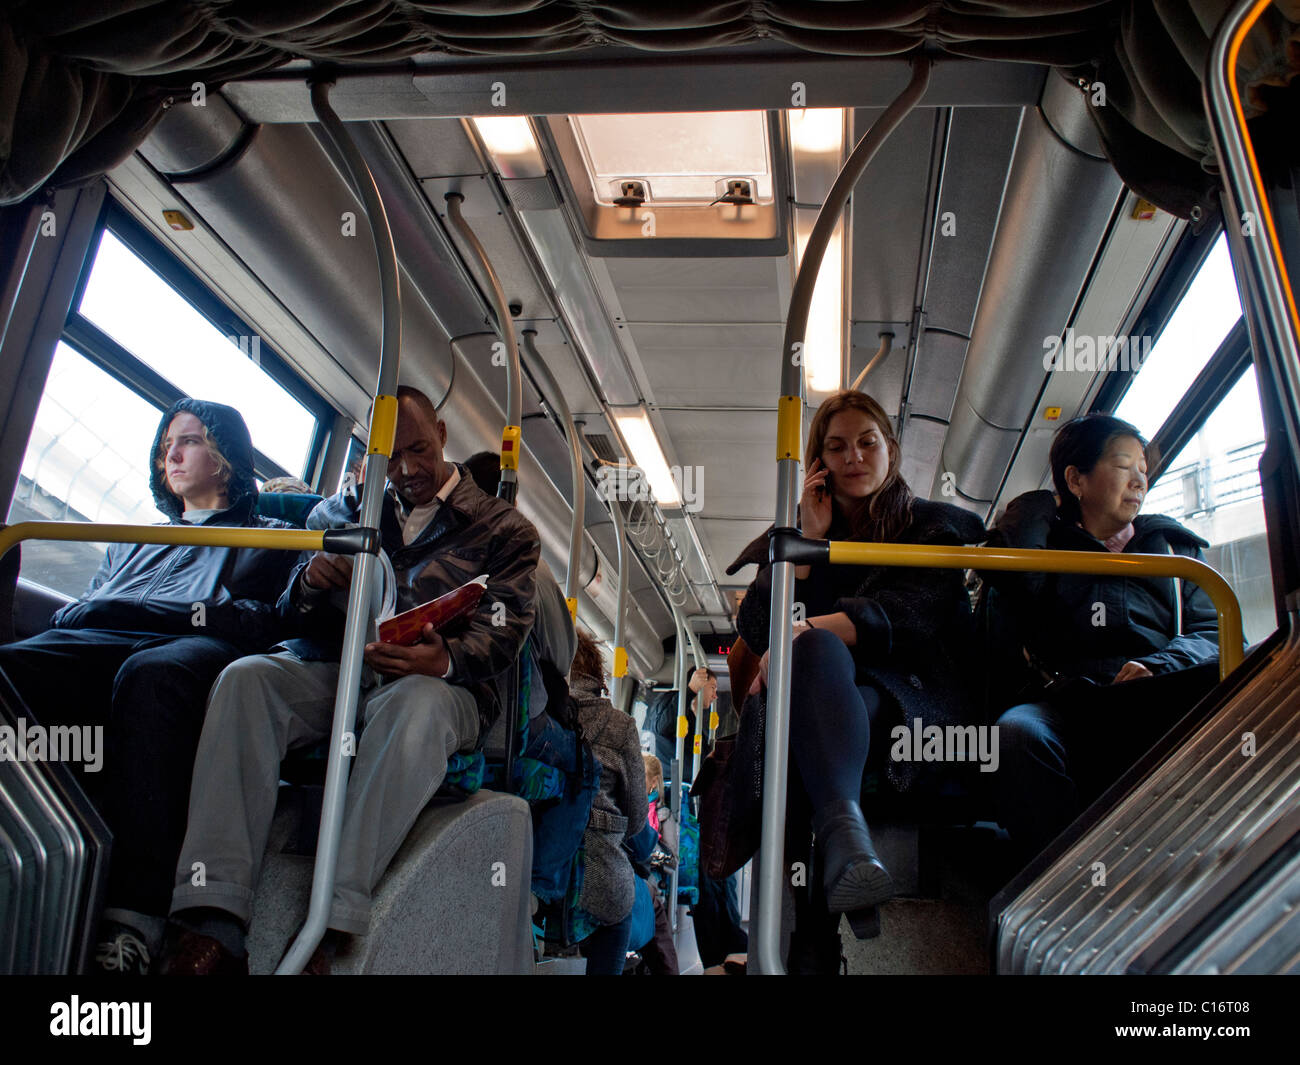 Multi ethnic passengers on a city bus in Stockholm Sweden - Stock Image